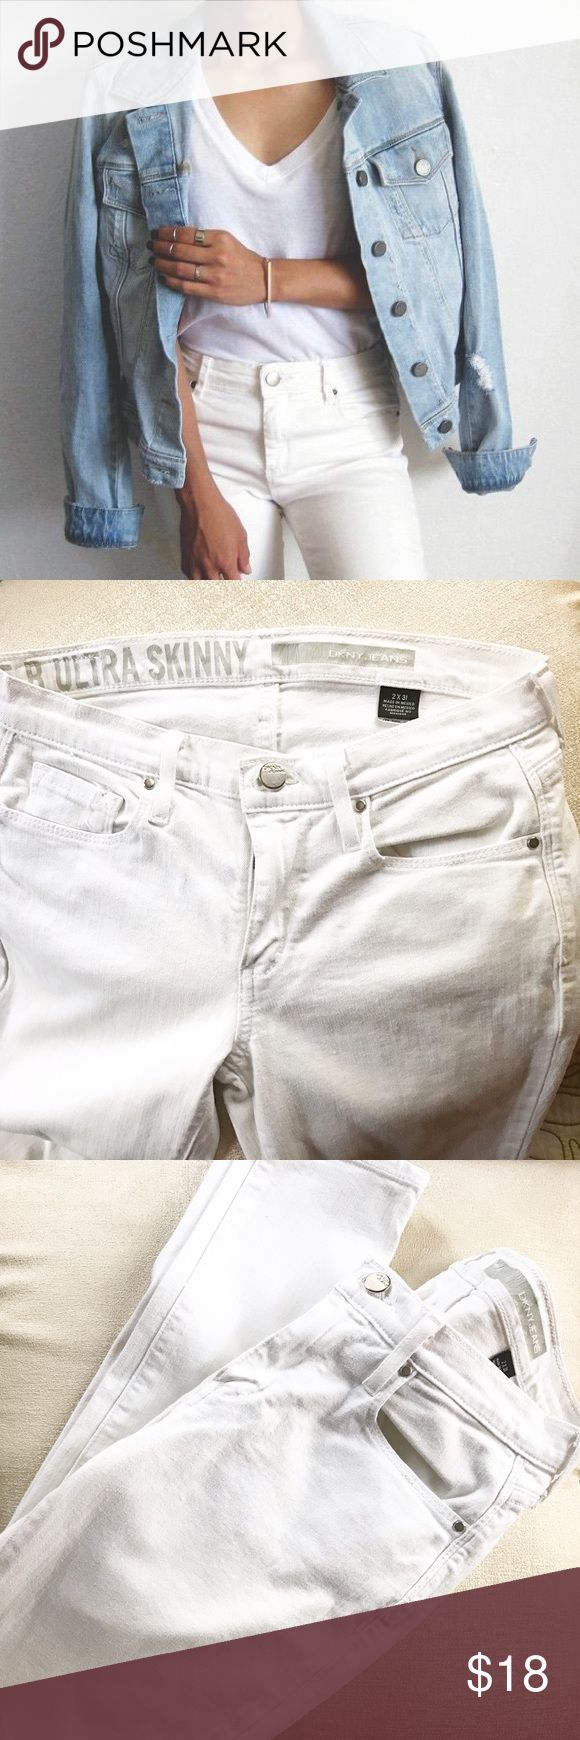 •host pick•White skinny jeans •ultra skinny jeans by DKNY / new without tag                •one of spring's most versatile denim items.                     •size 2 x 31 inseam. DKNY Jeans Skinny